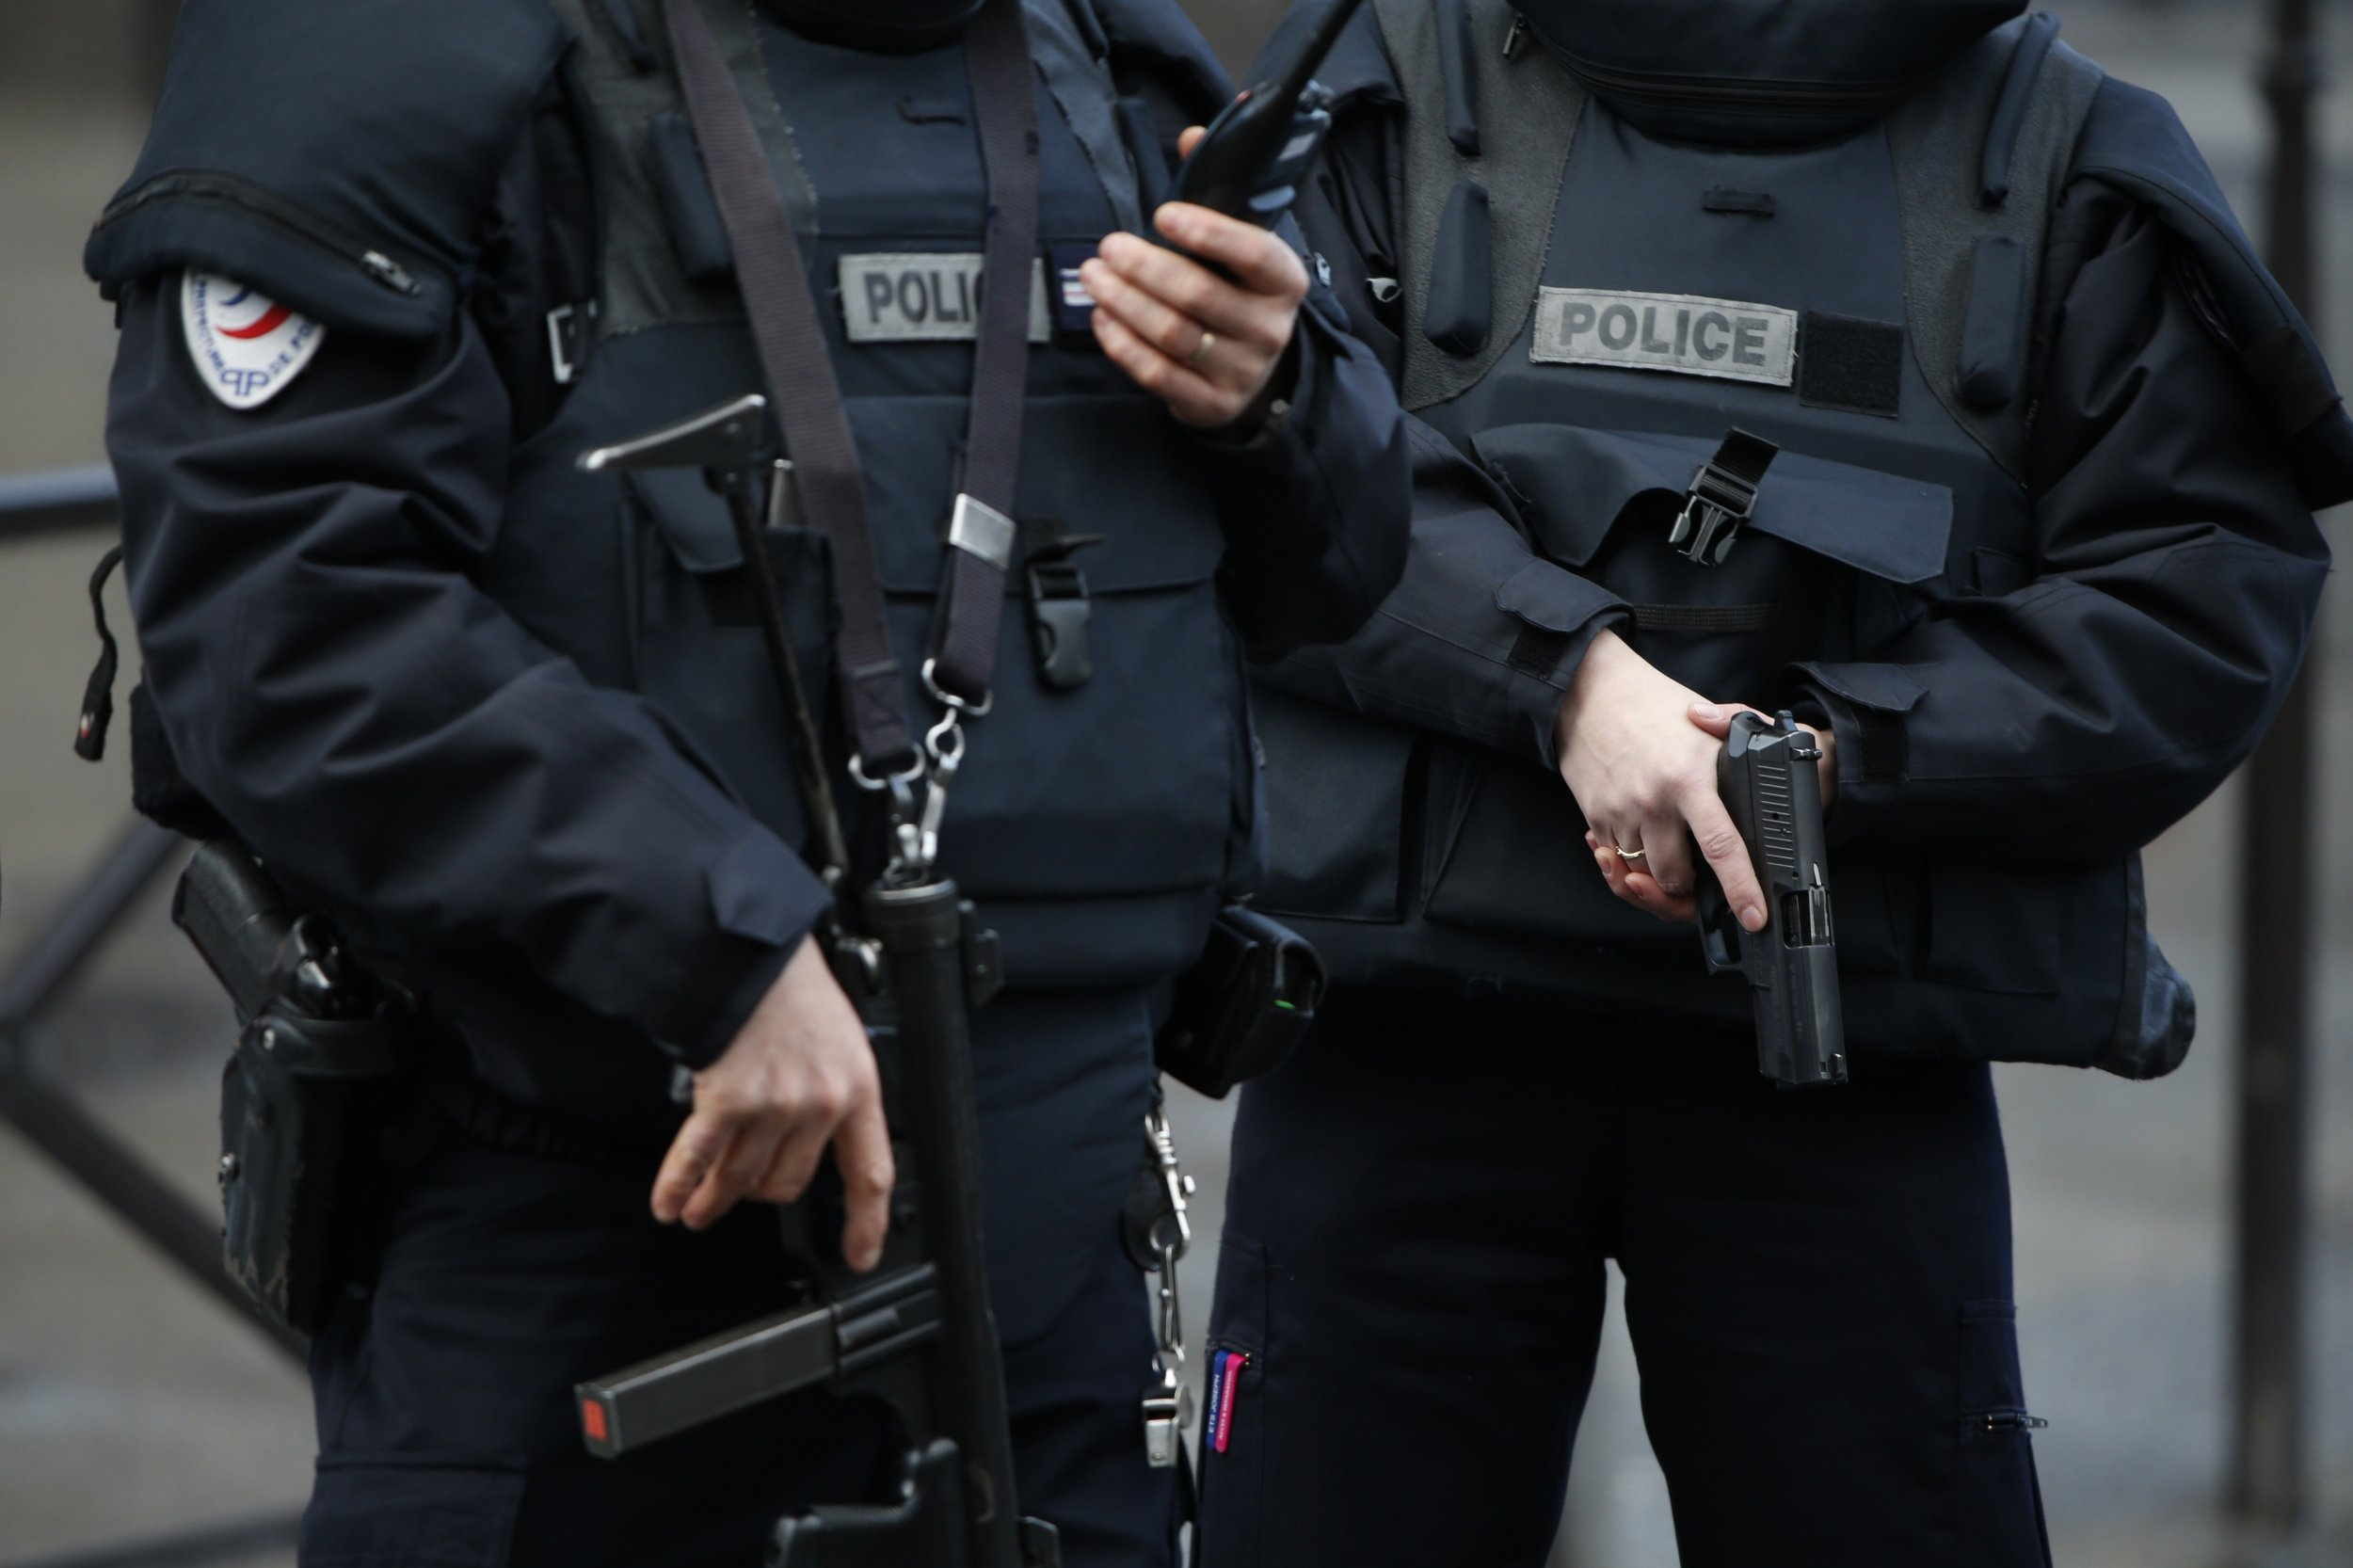 French police holding guns